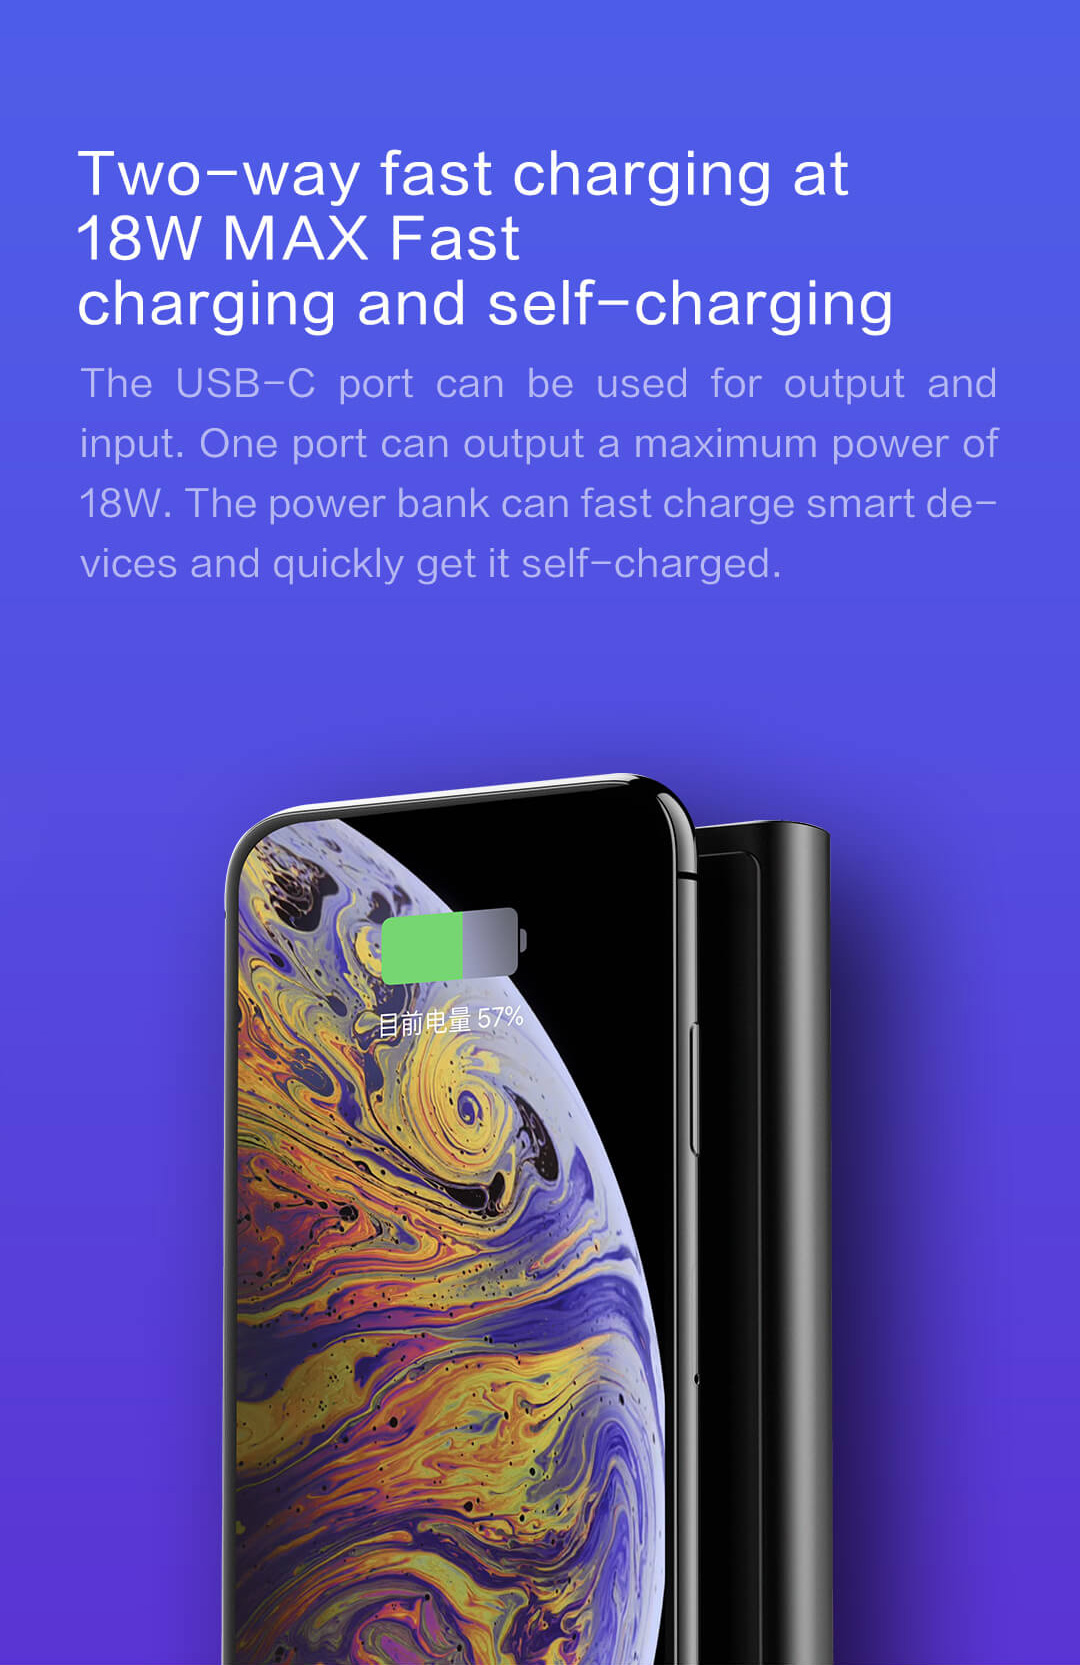 ZMI LevPower M10 USB-C Power Bank, Qi Certified Wireless Charger, Apple MFi Certified, USB PD, Lightning Port Input